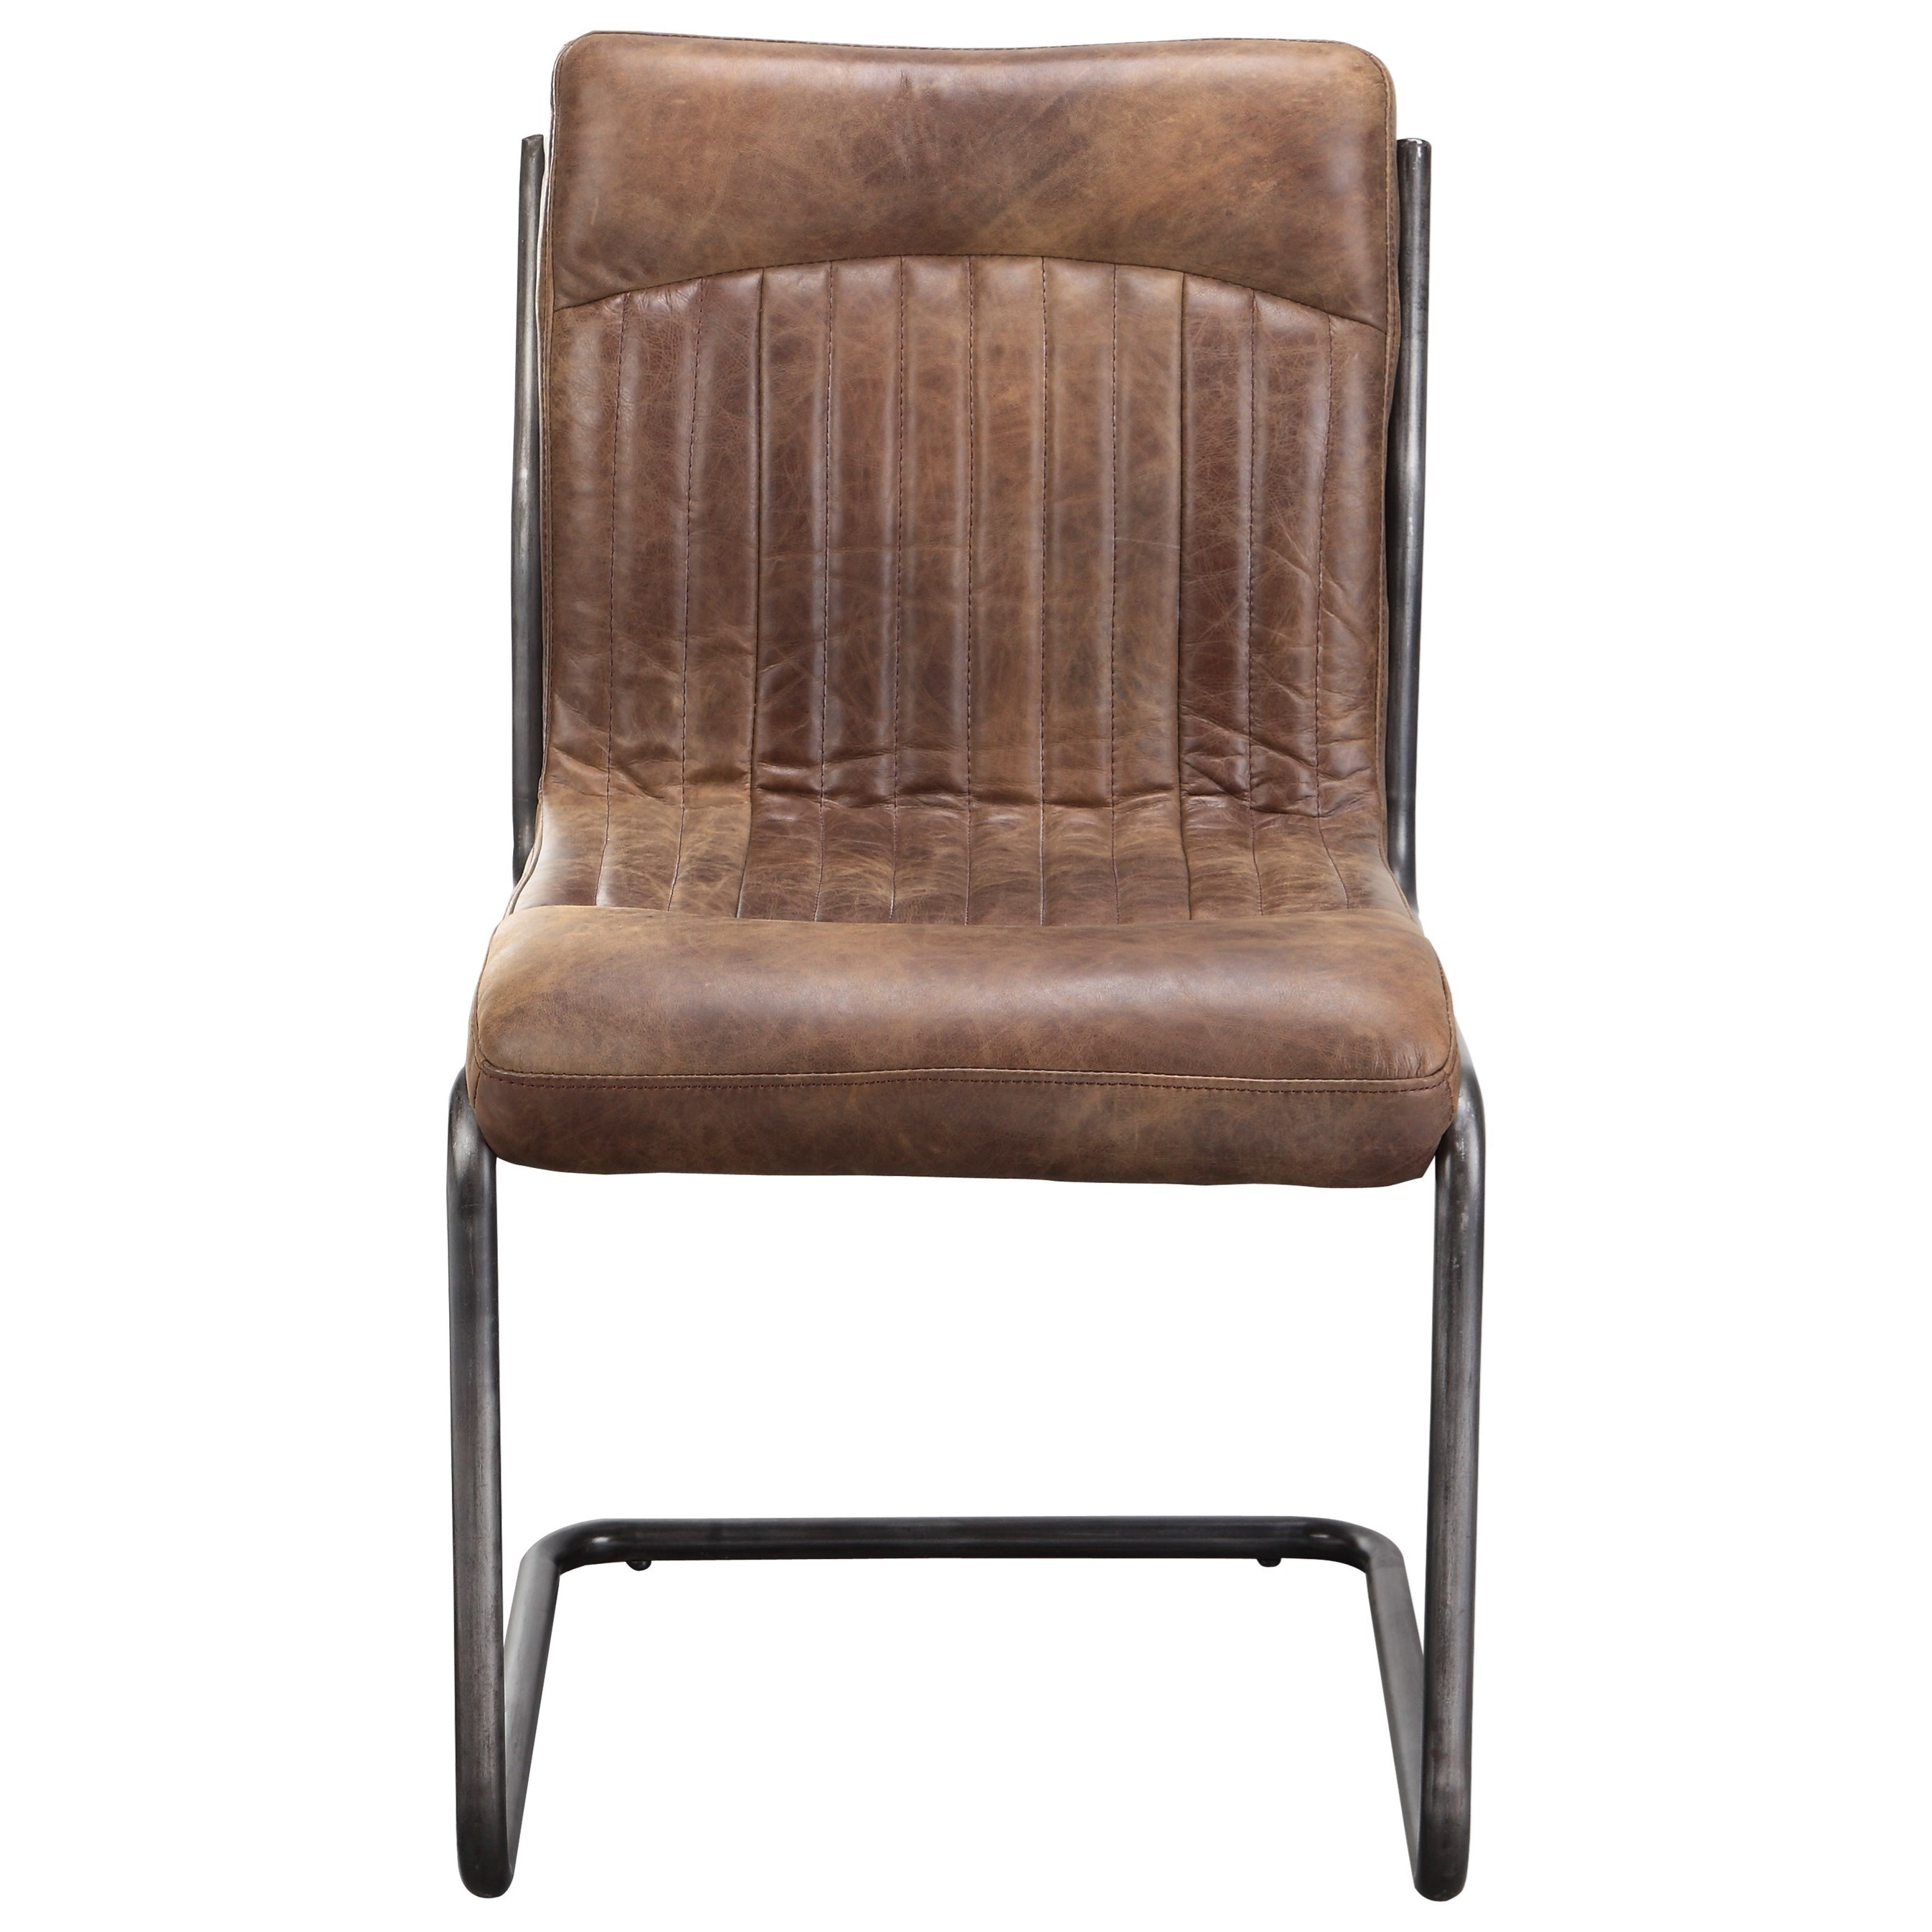 Moe's Home Collection Ansel  Dining Chair - Light Brown - M2 - Item Number: PK-1043-03